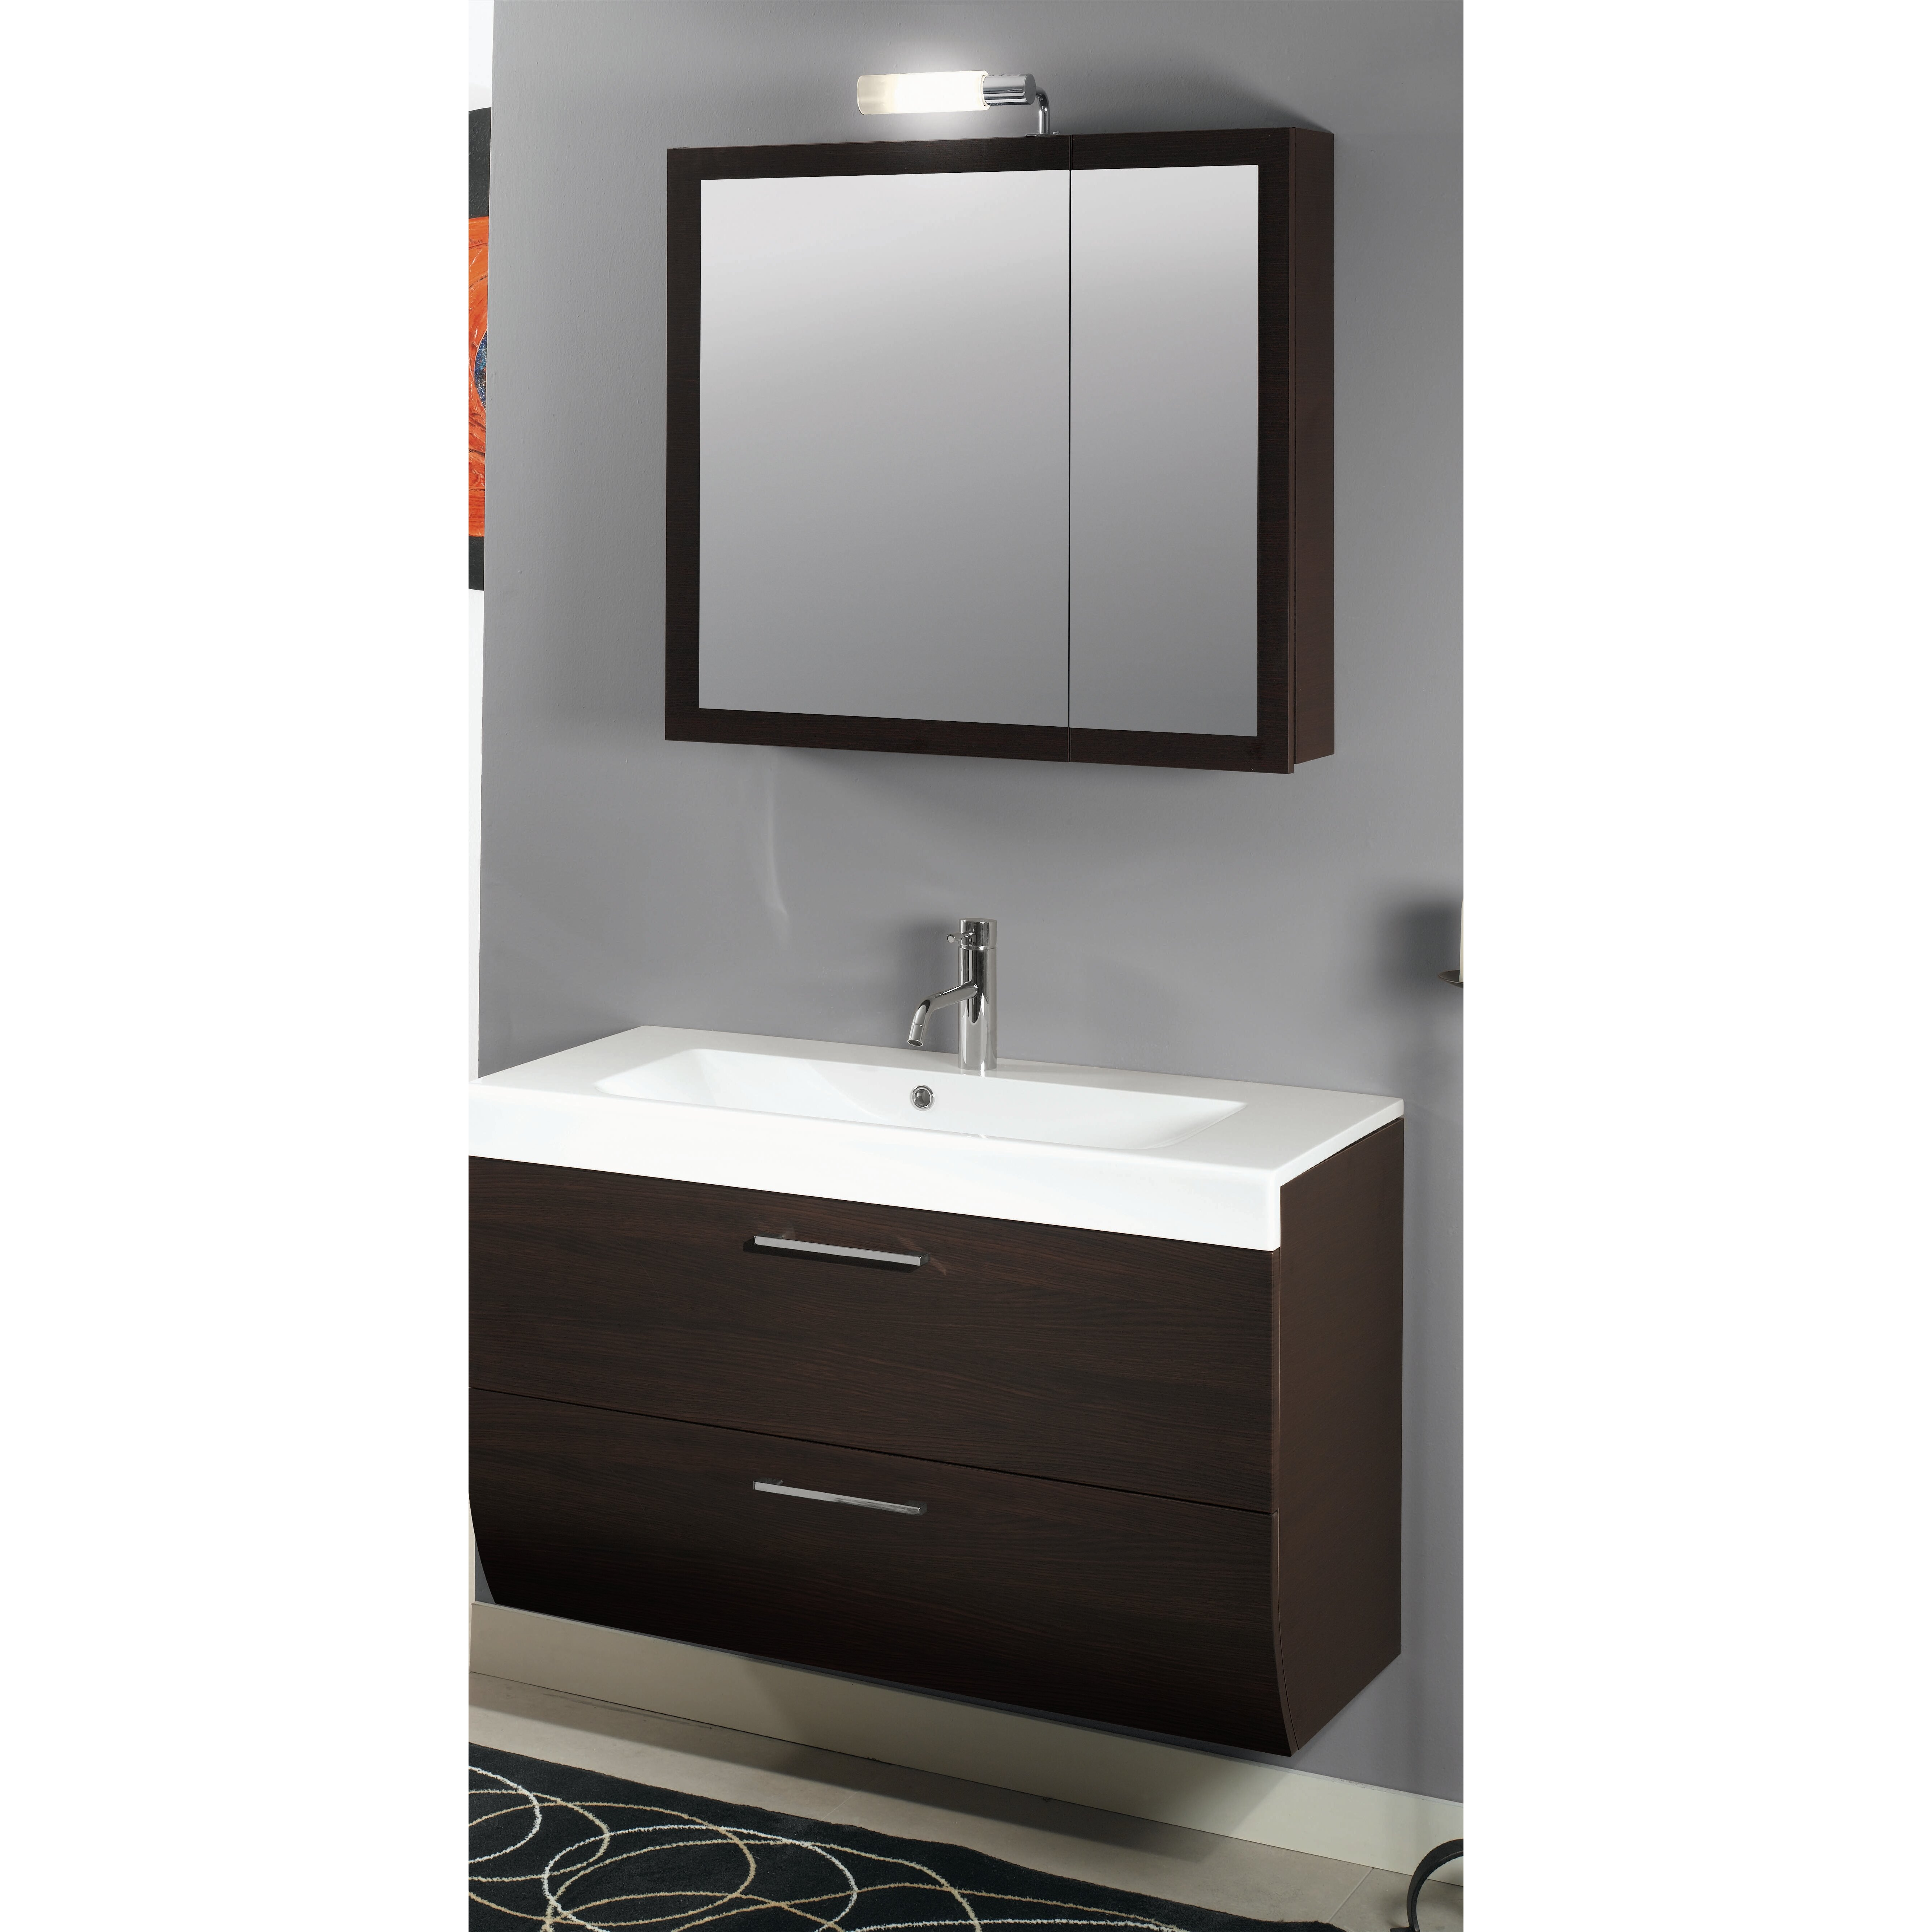 New day 38 single wall mounted bathroom vanity set with for Bathroom mirror set